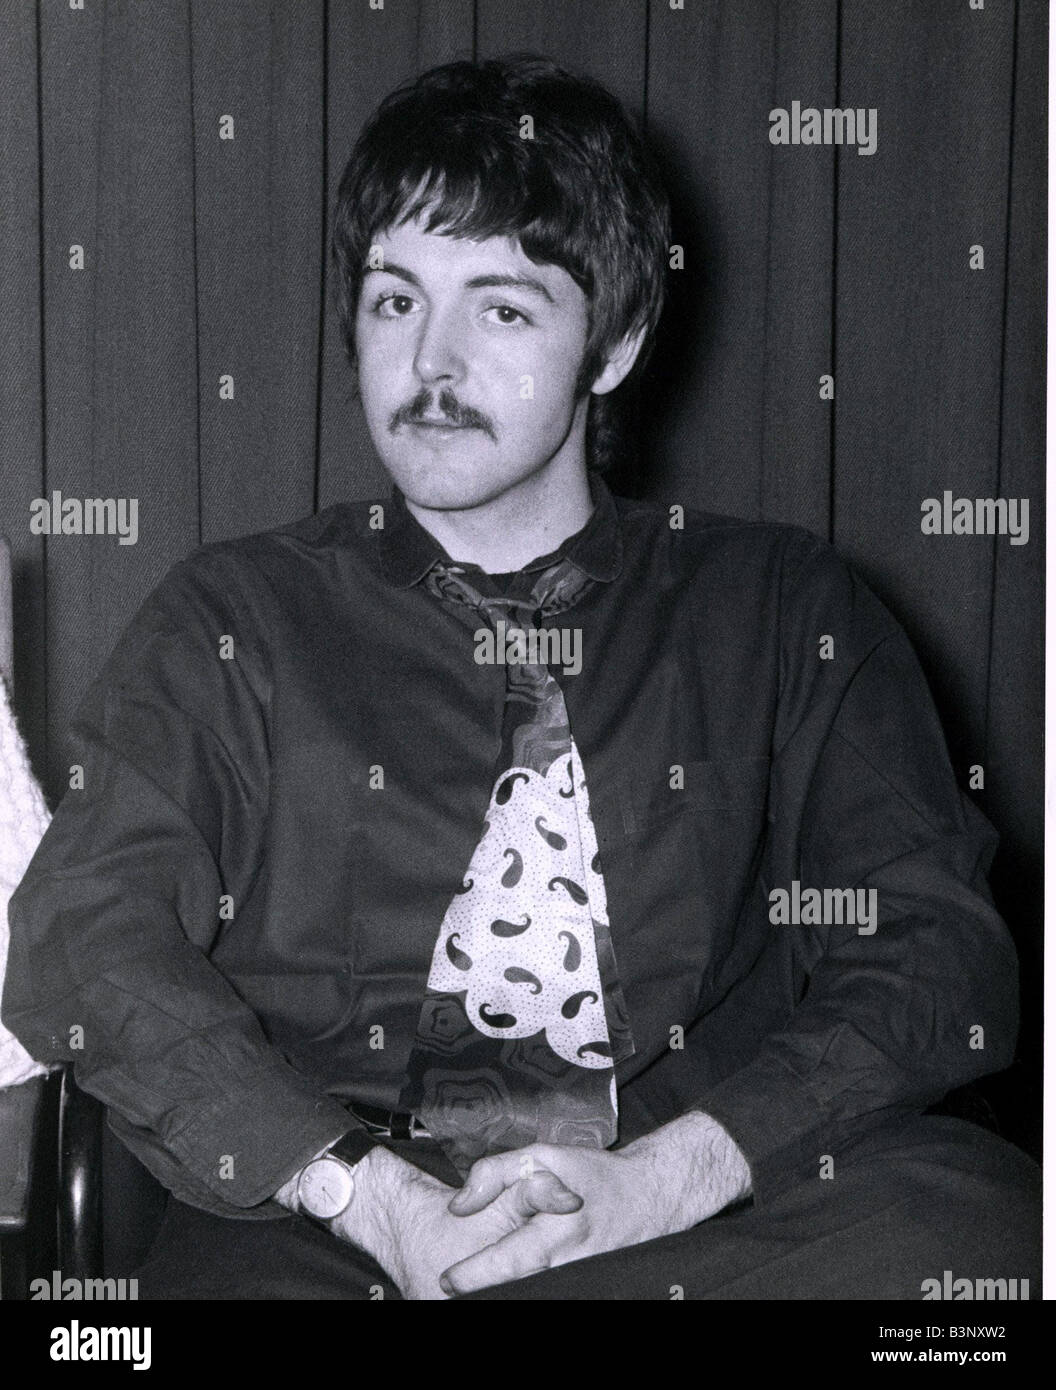 Paul McCartney Singer With The Beatles Pop Group Sporting A New Moustache February 1967